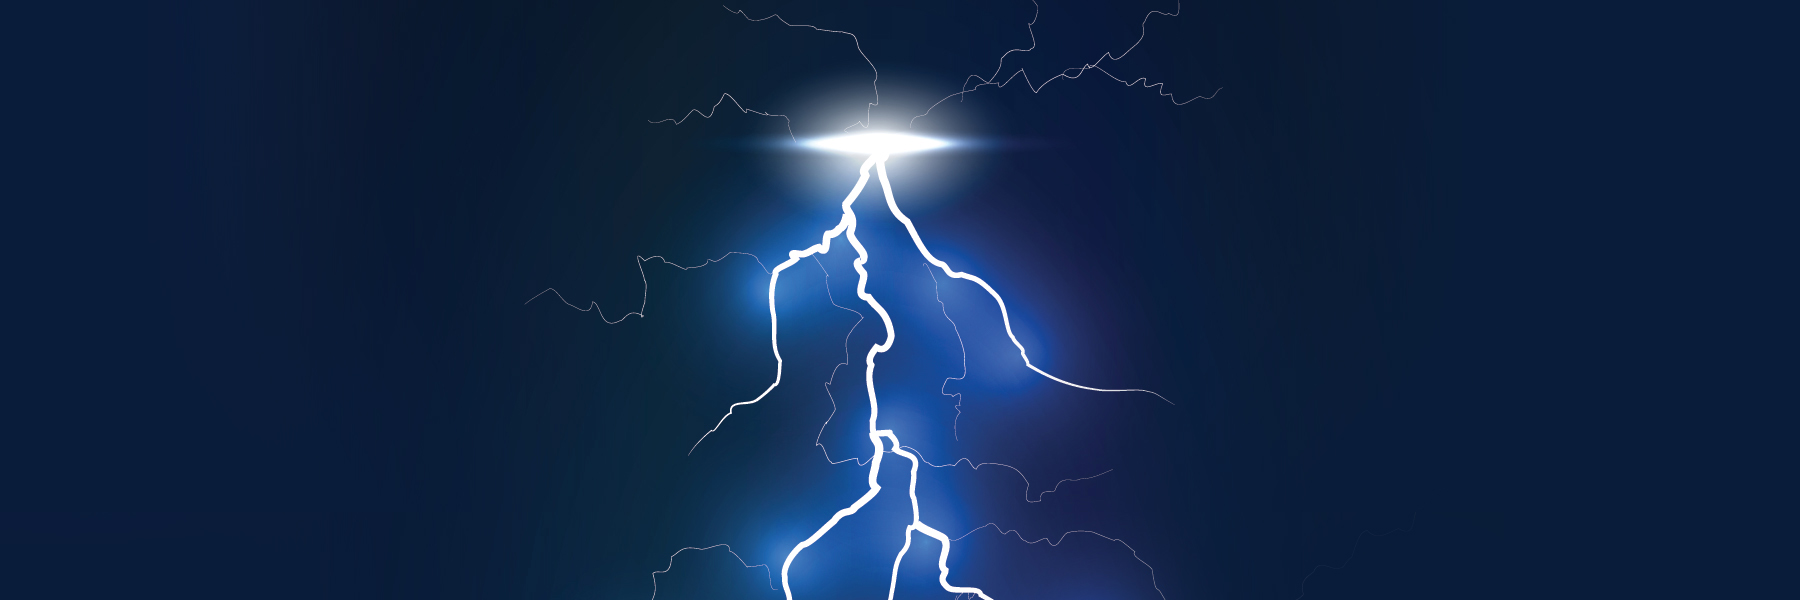 White and electric blue lightning bolt on a dark background,